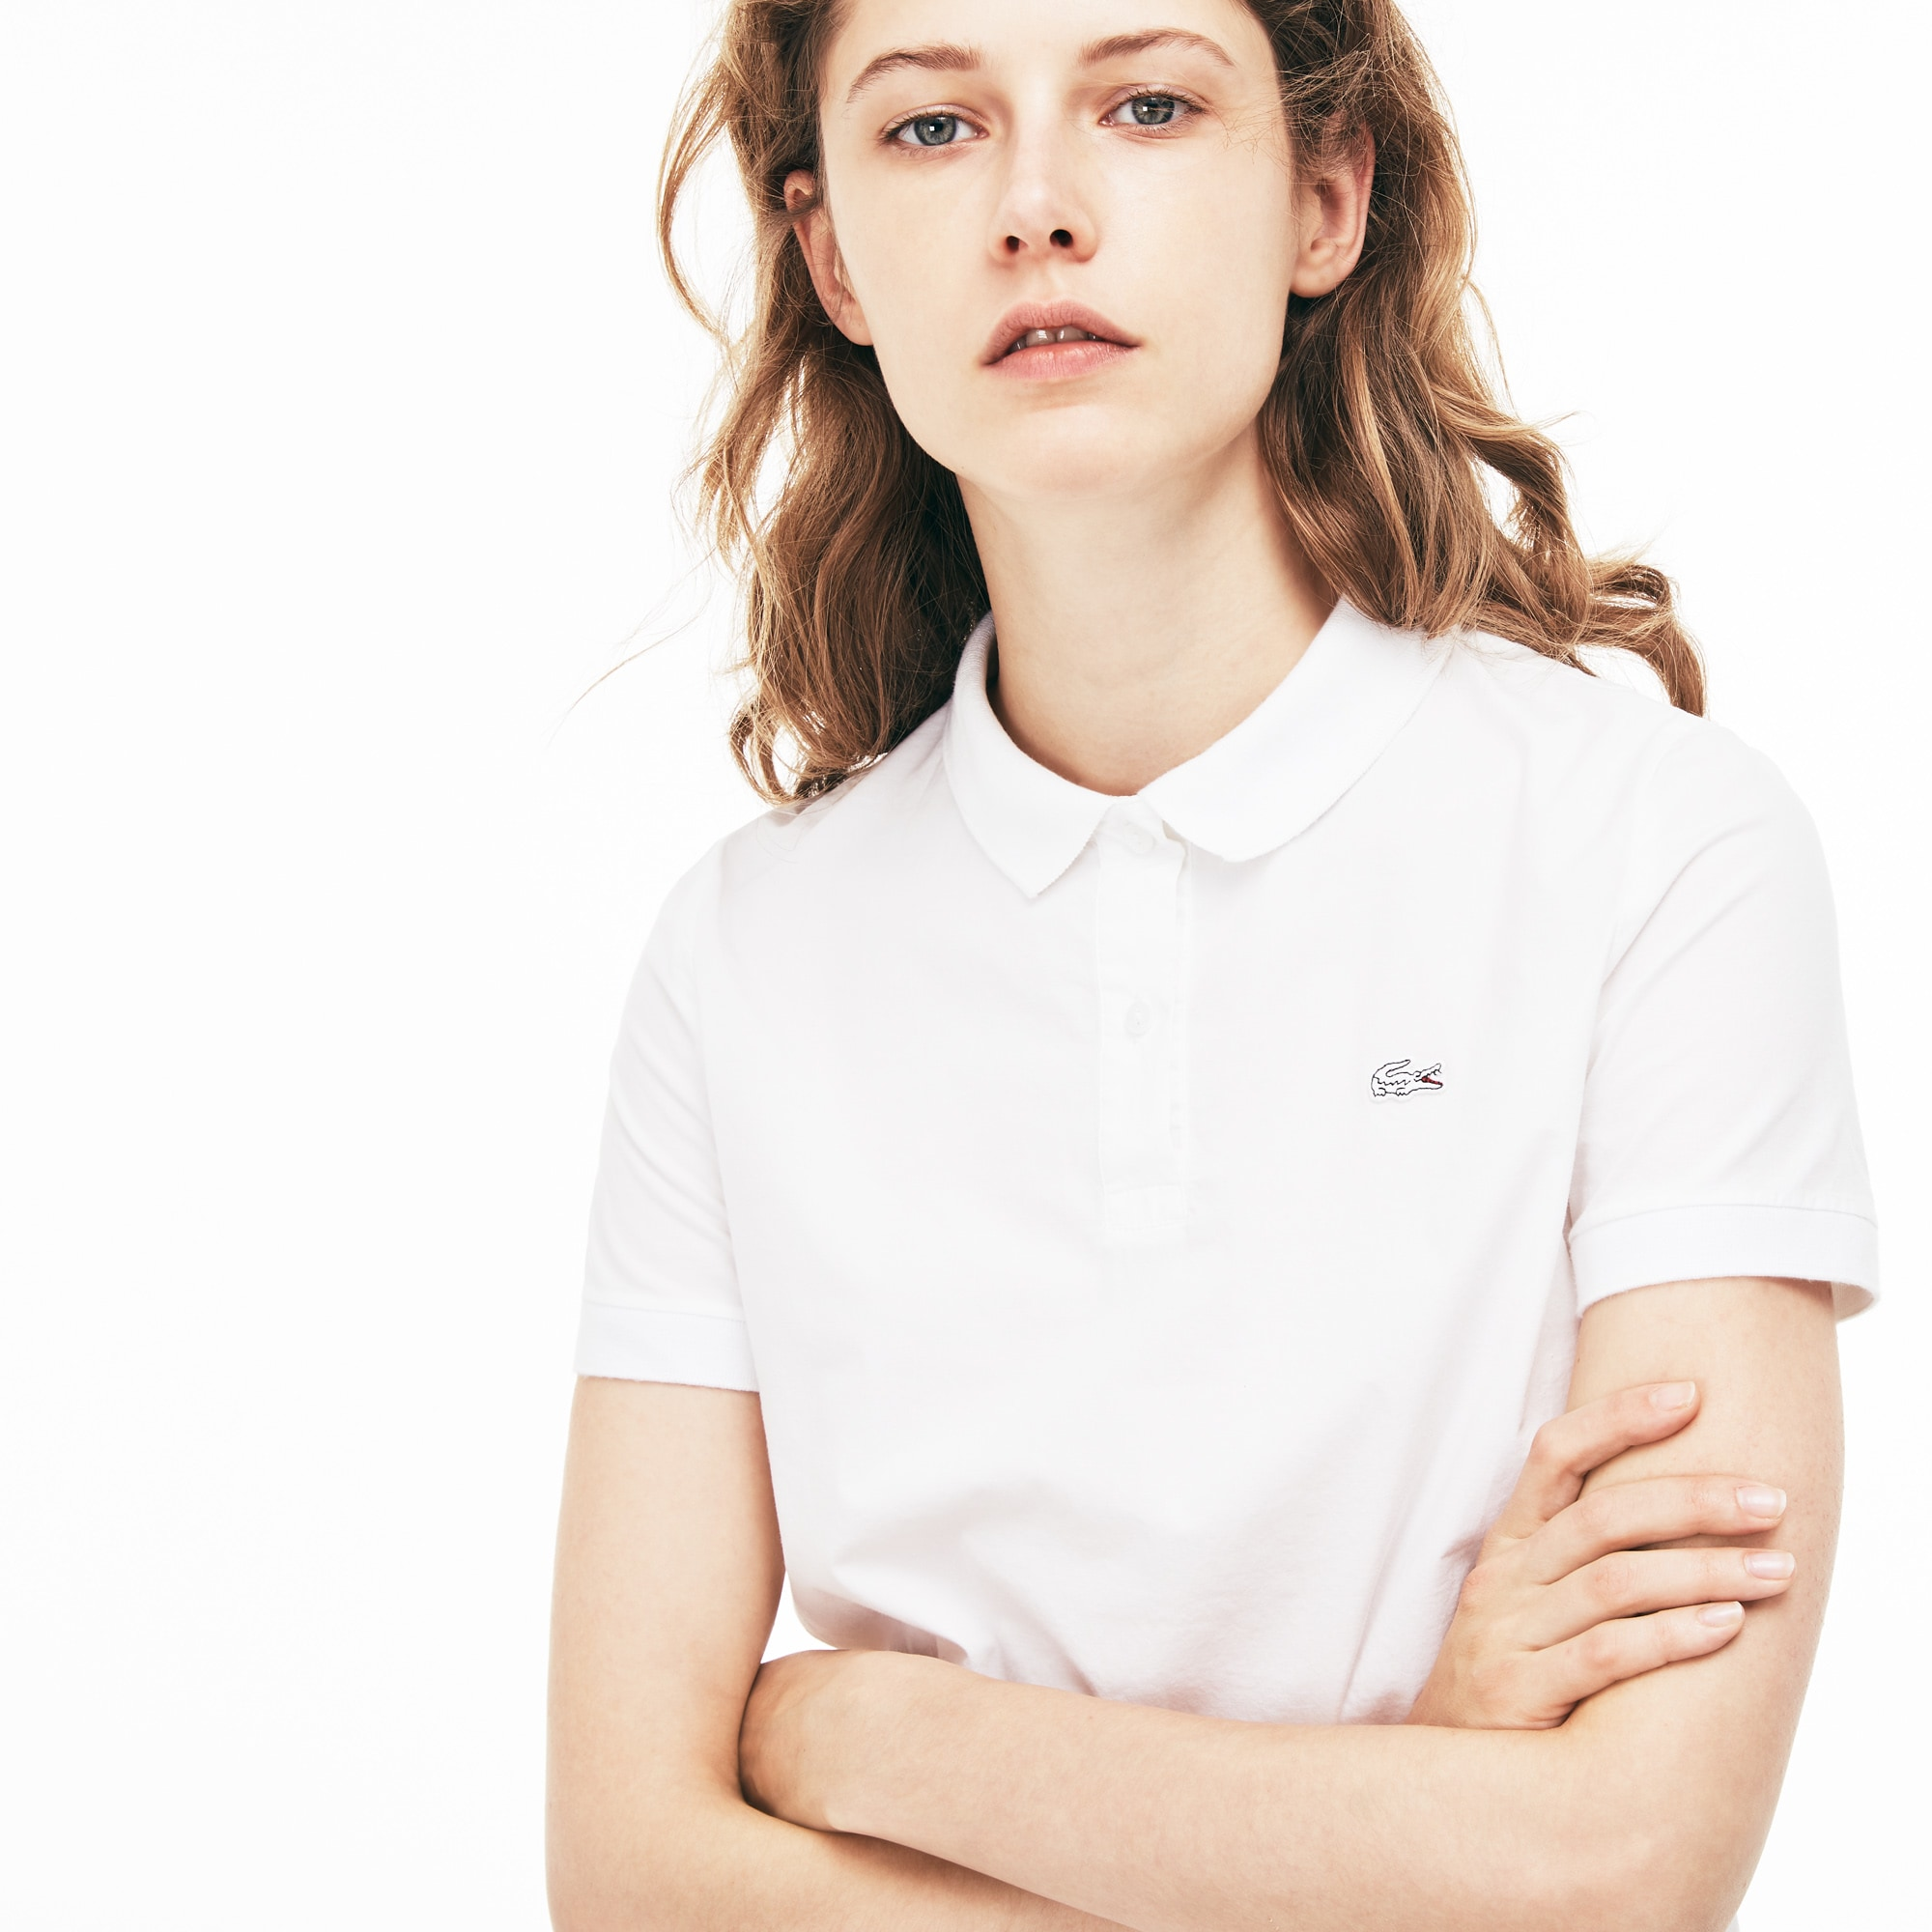 Camisa Lacoste Regular Fit Feminina em Popeline Stretch